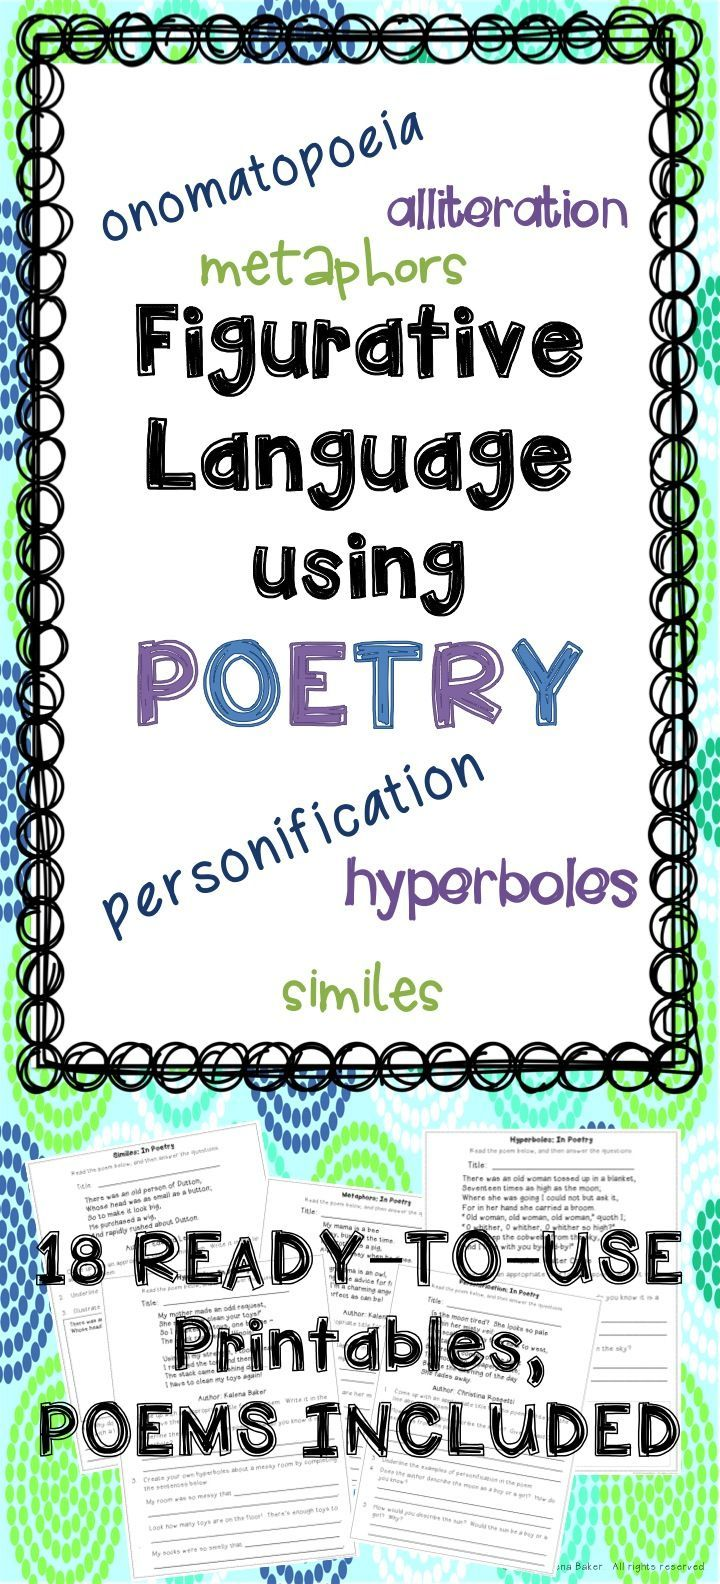 small resolution of Figurative Language in Poetry   Teaching figurative language